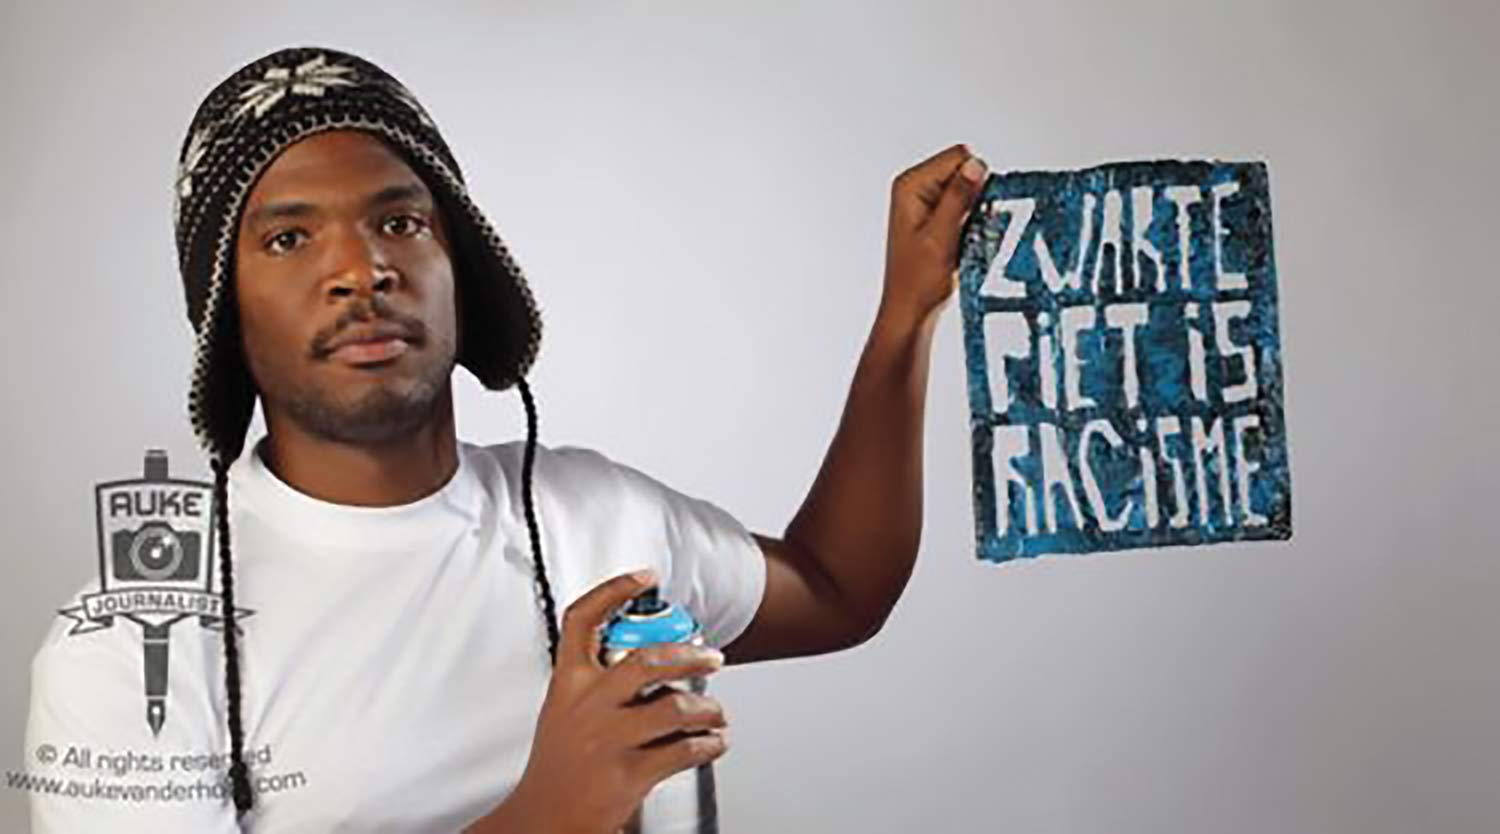 "Student activist Quinsy Gario alongside the logo for the campaign ""Zwarte Piet Is Racisme,"" the Netherlands, November 2011."